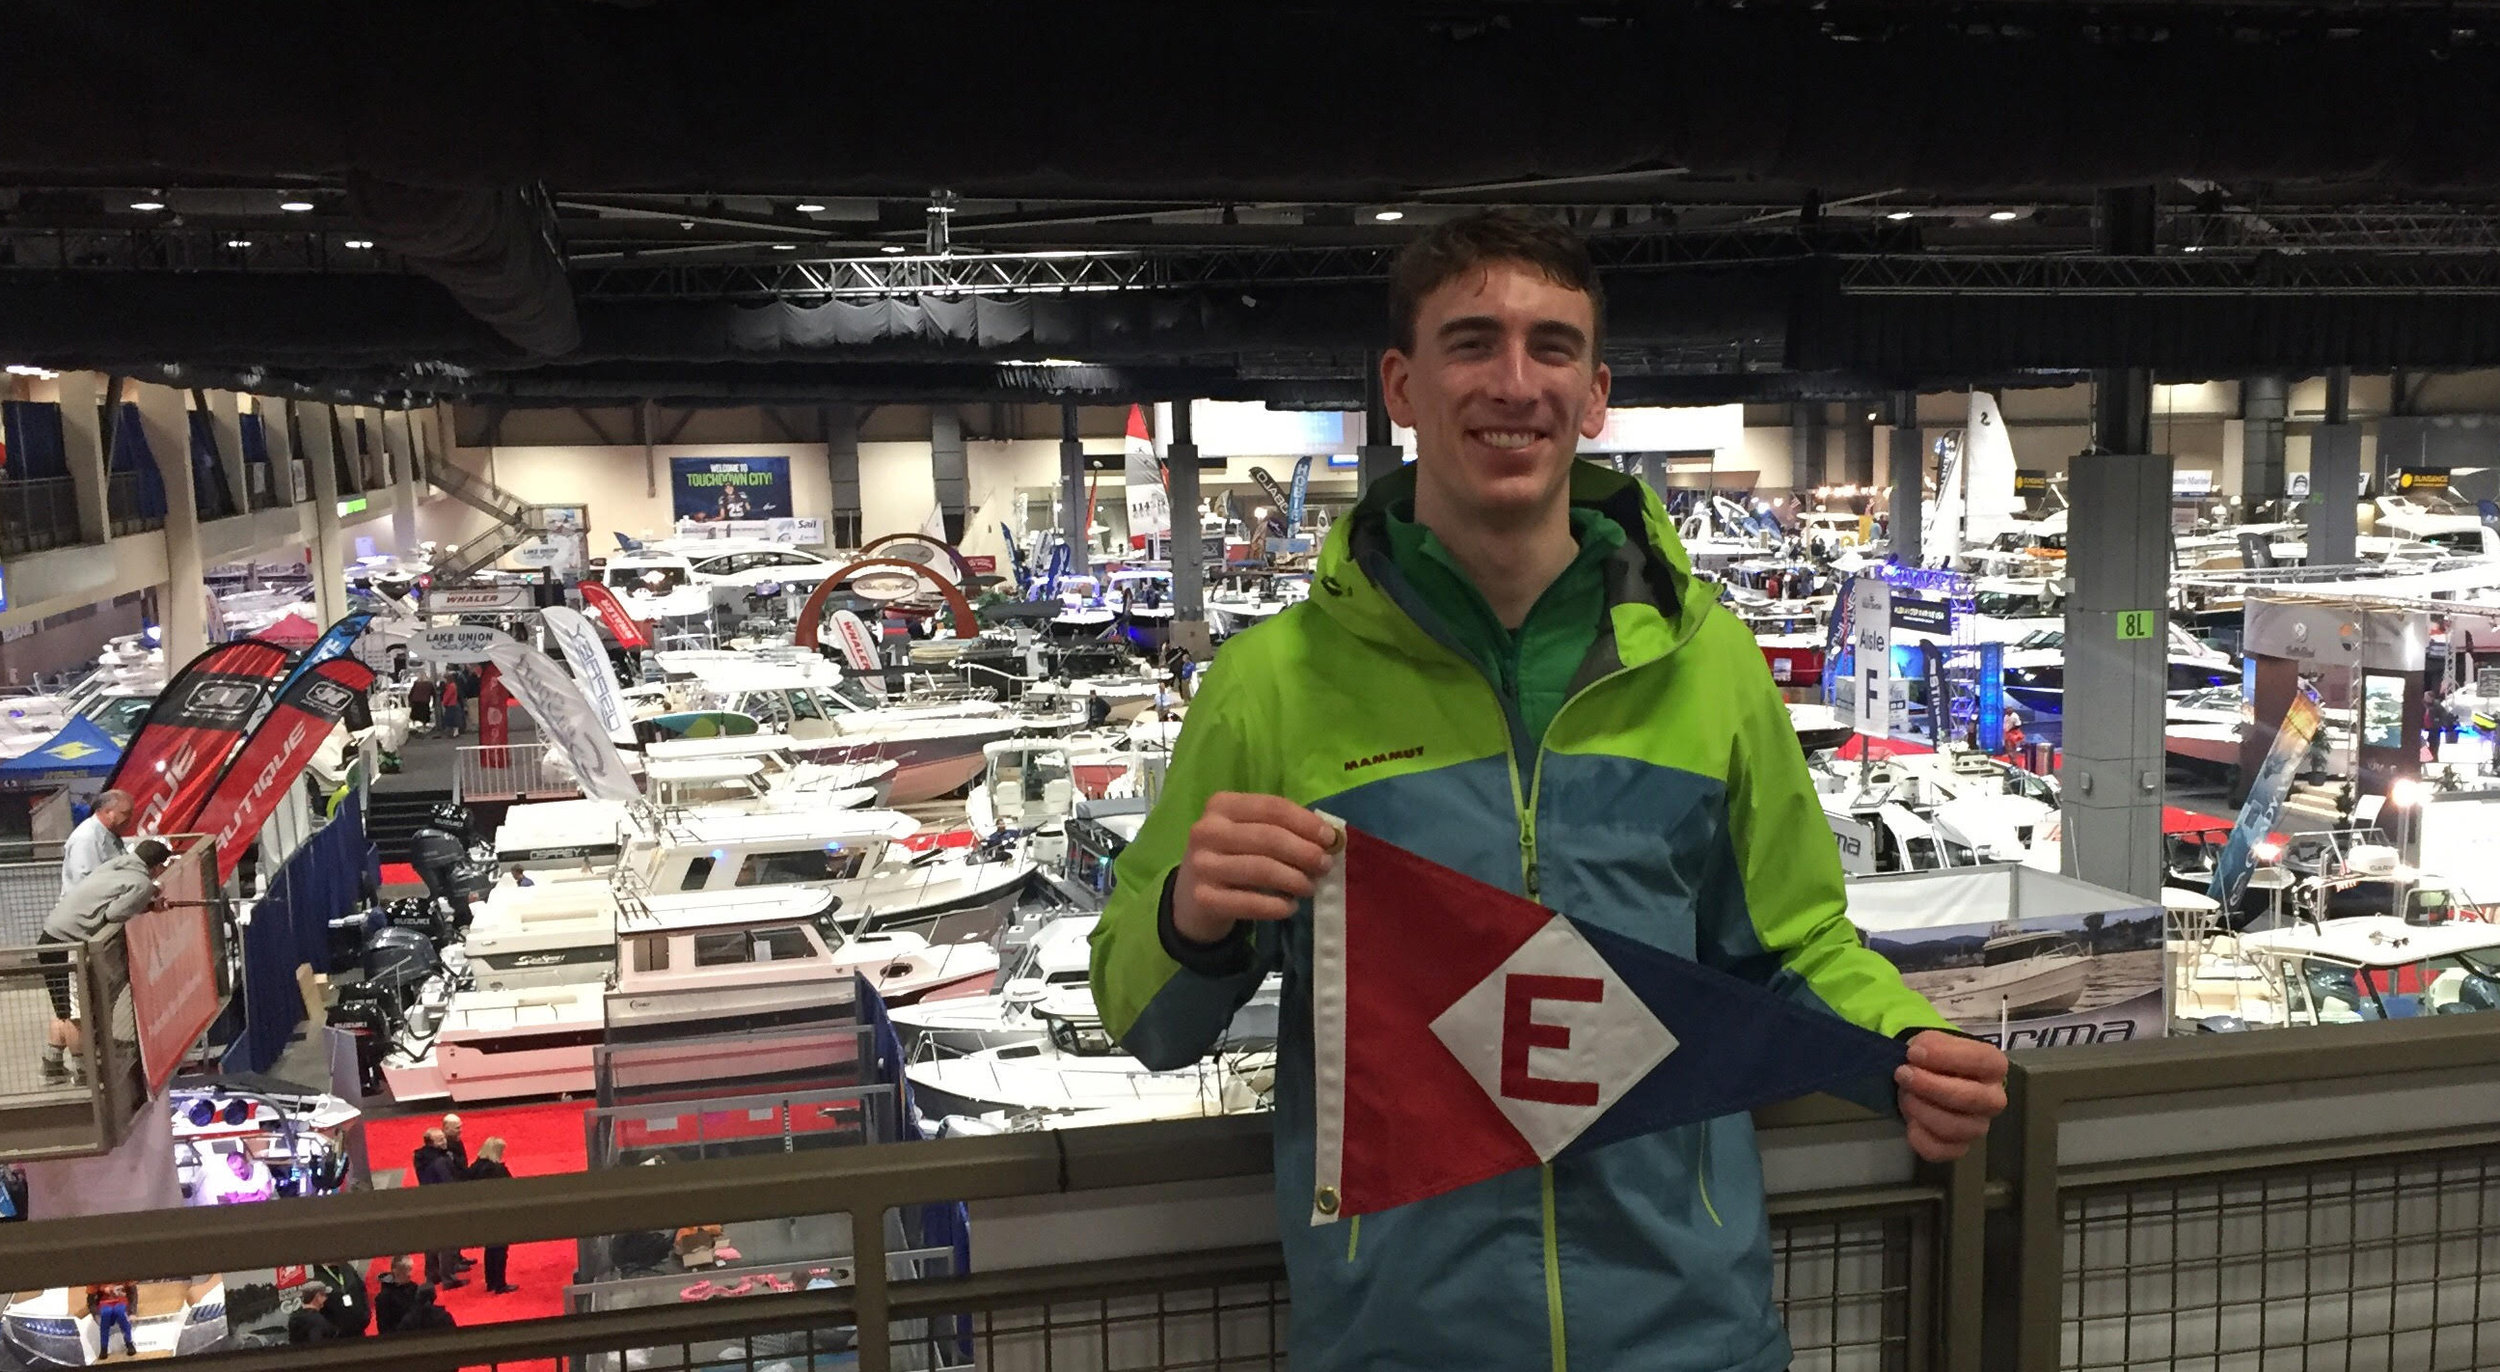 Langdon Junge shows his colors at this year's Seattle Boat Show.